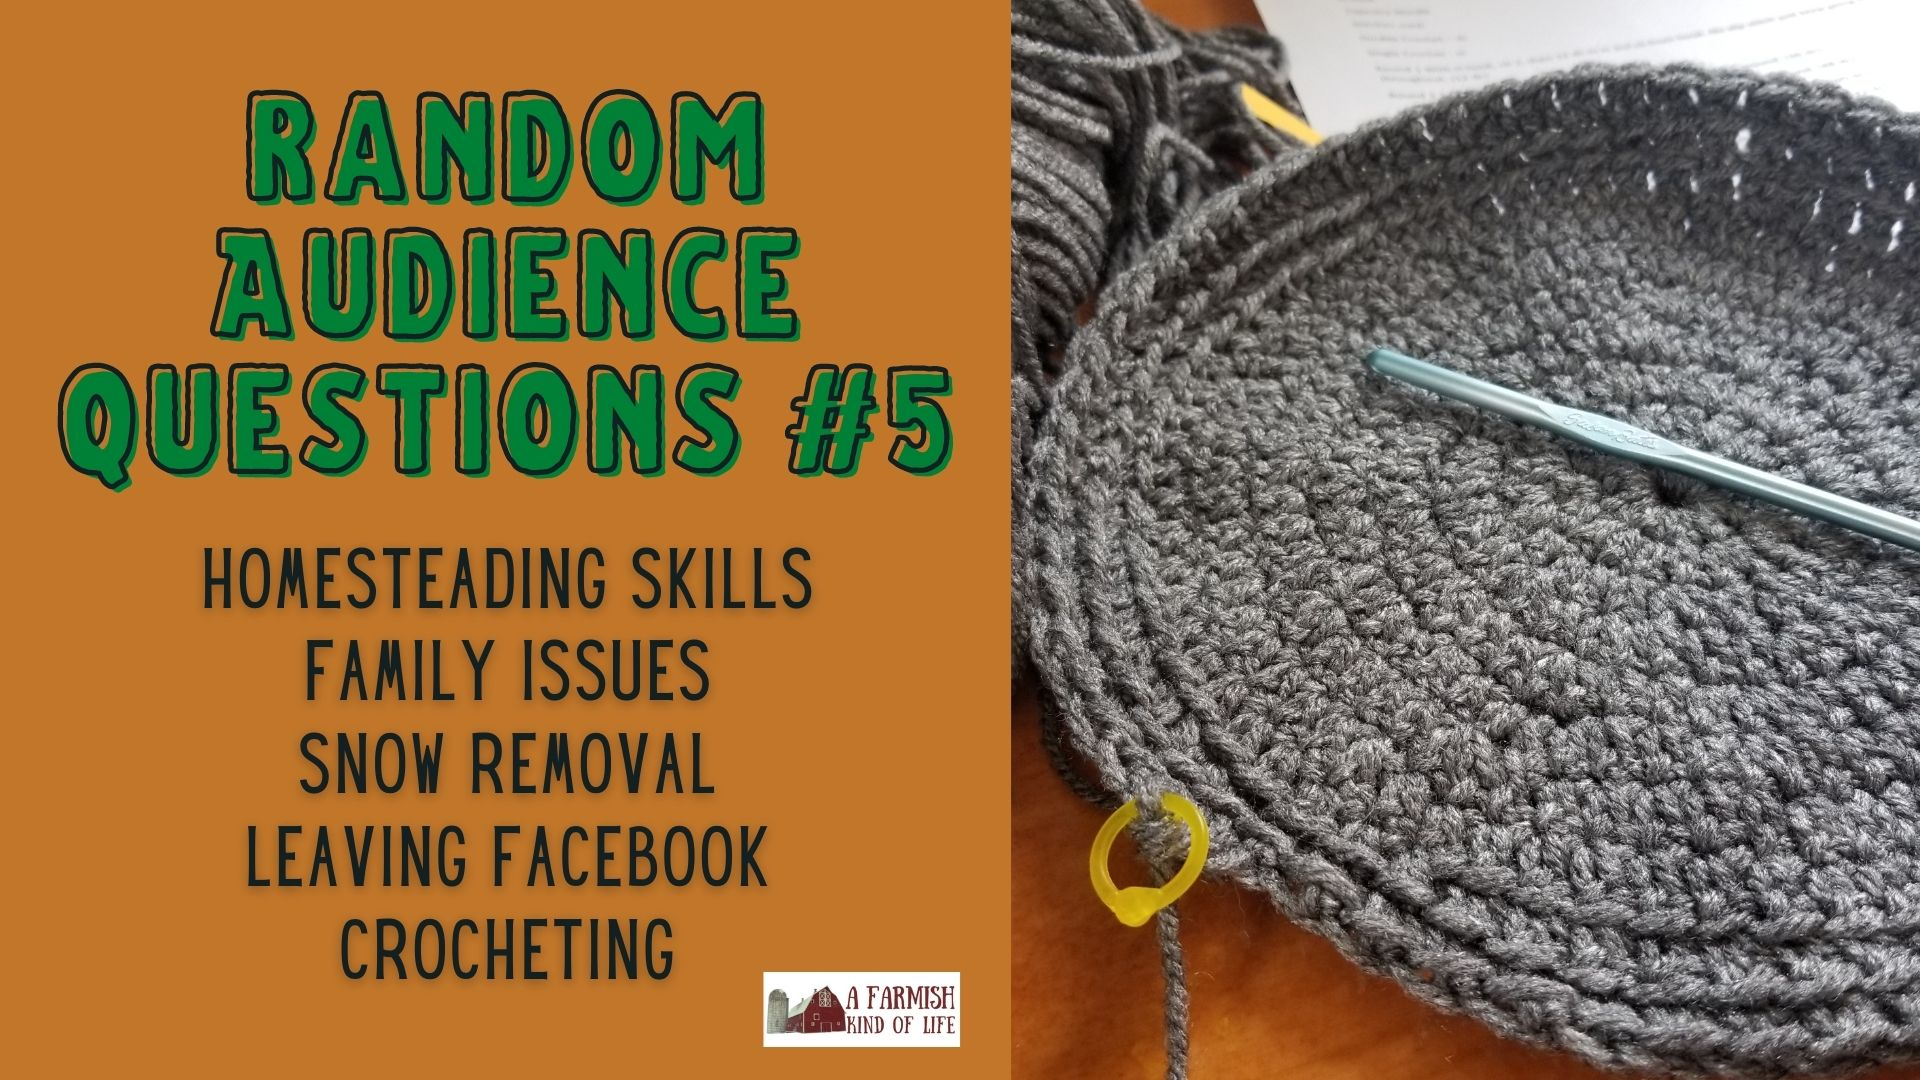 108: RAQ #5 – homesteading skills, family issues, snow removal, leaving Facebook, and crocheting